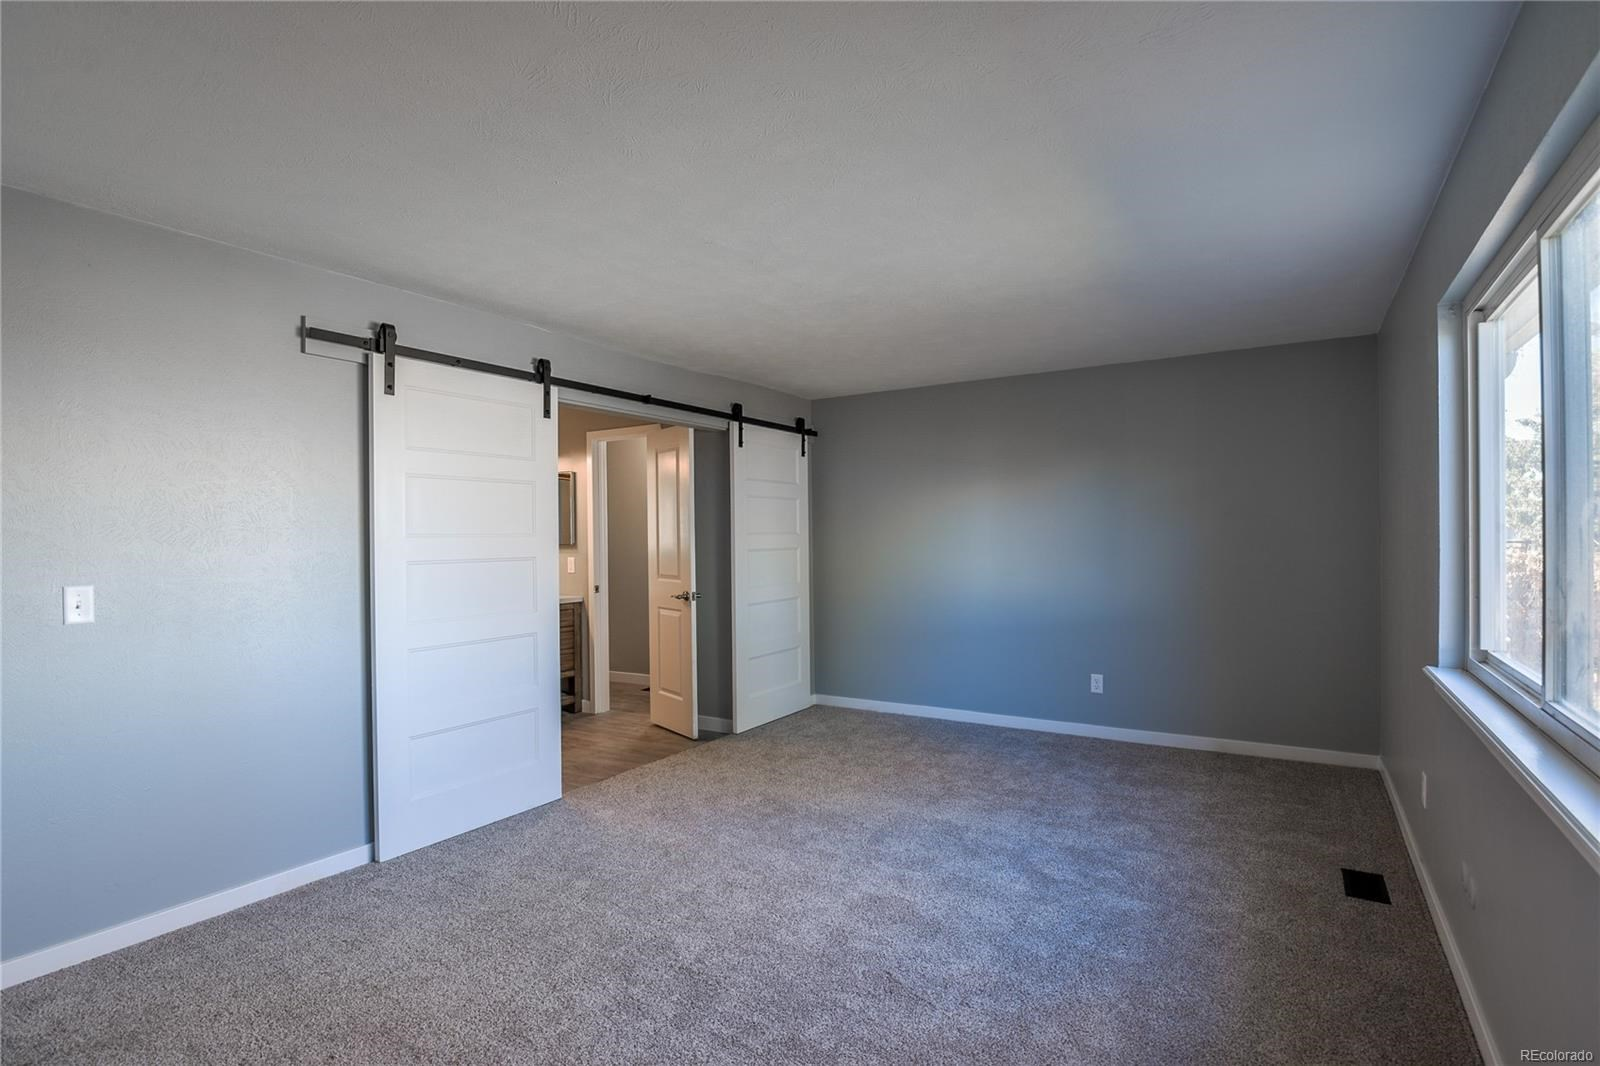 MLS# 8183776 - 31 - 2547 W 104th Circle, Westminster, CO 80234